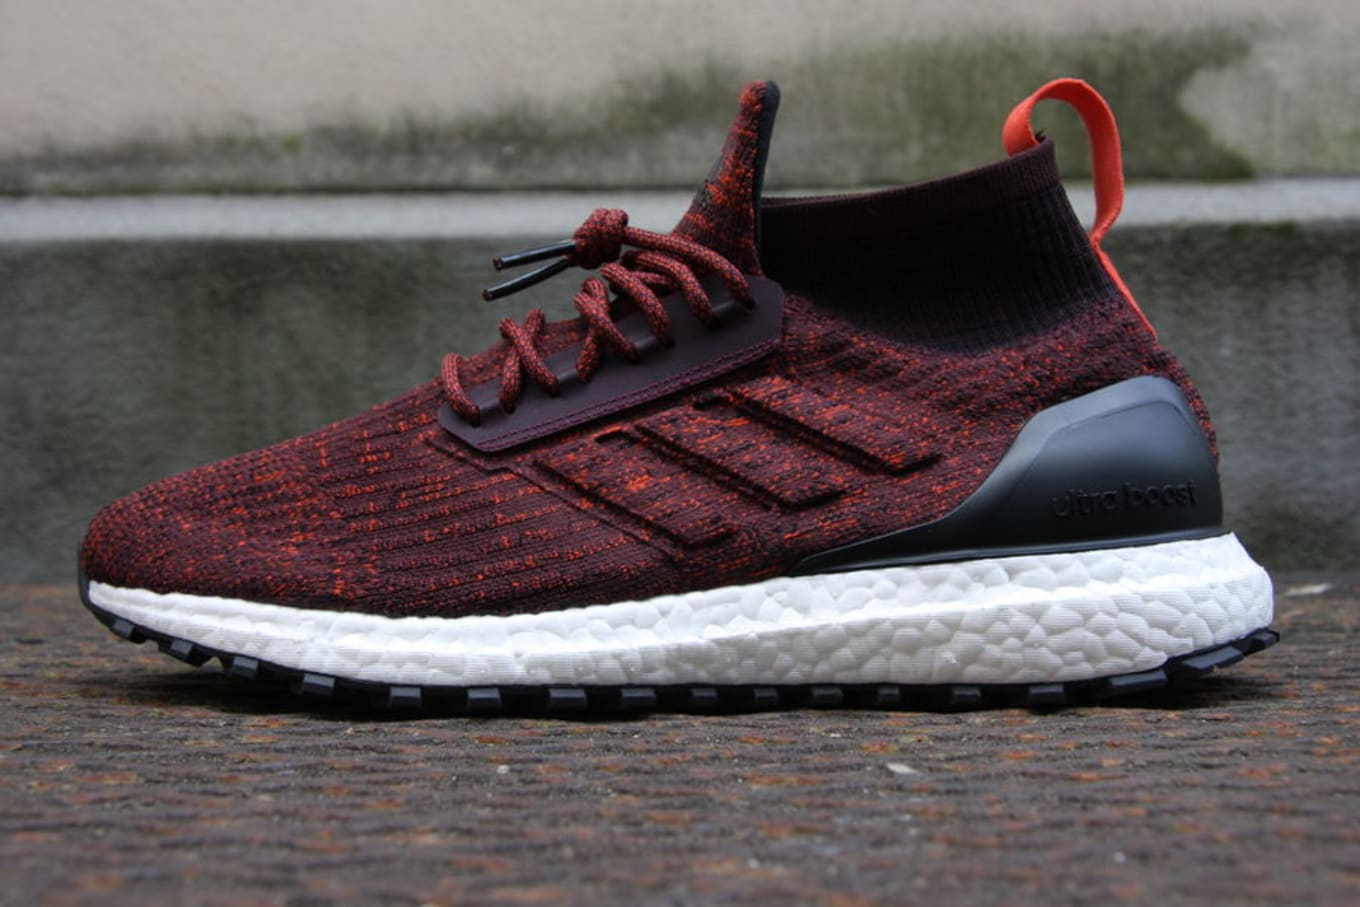 best service e5ad6 e3594 Adidas Ultra Boost ATR Red Release Date S82035 | Sole Collector